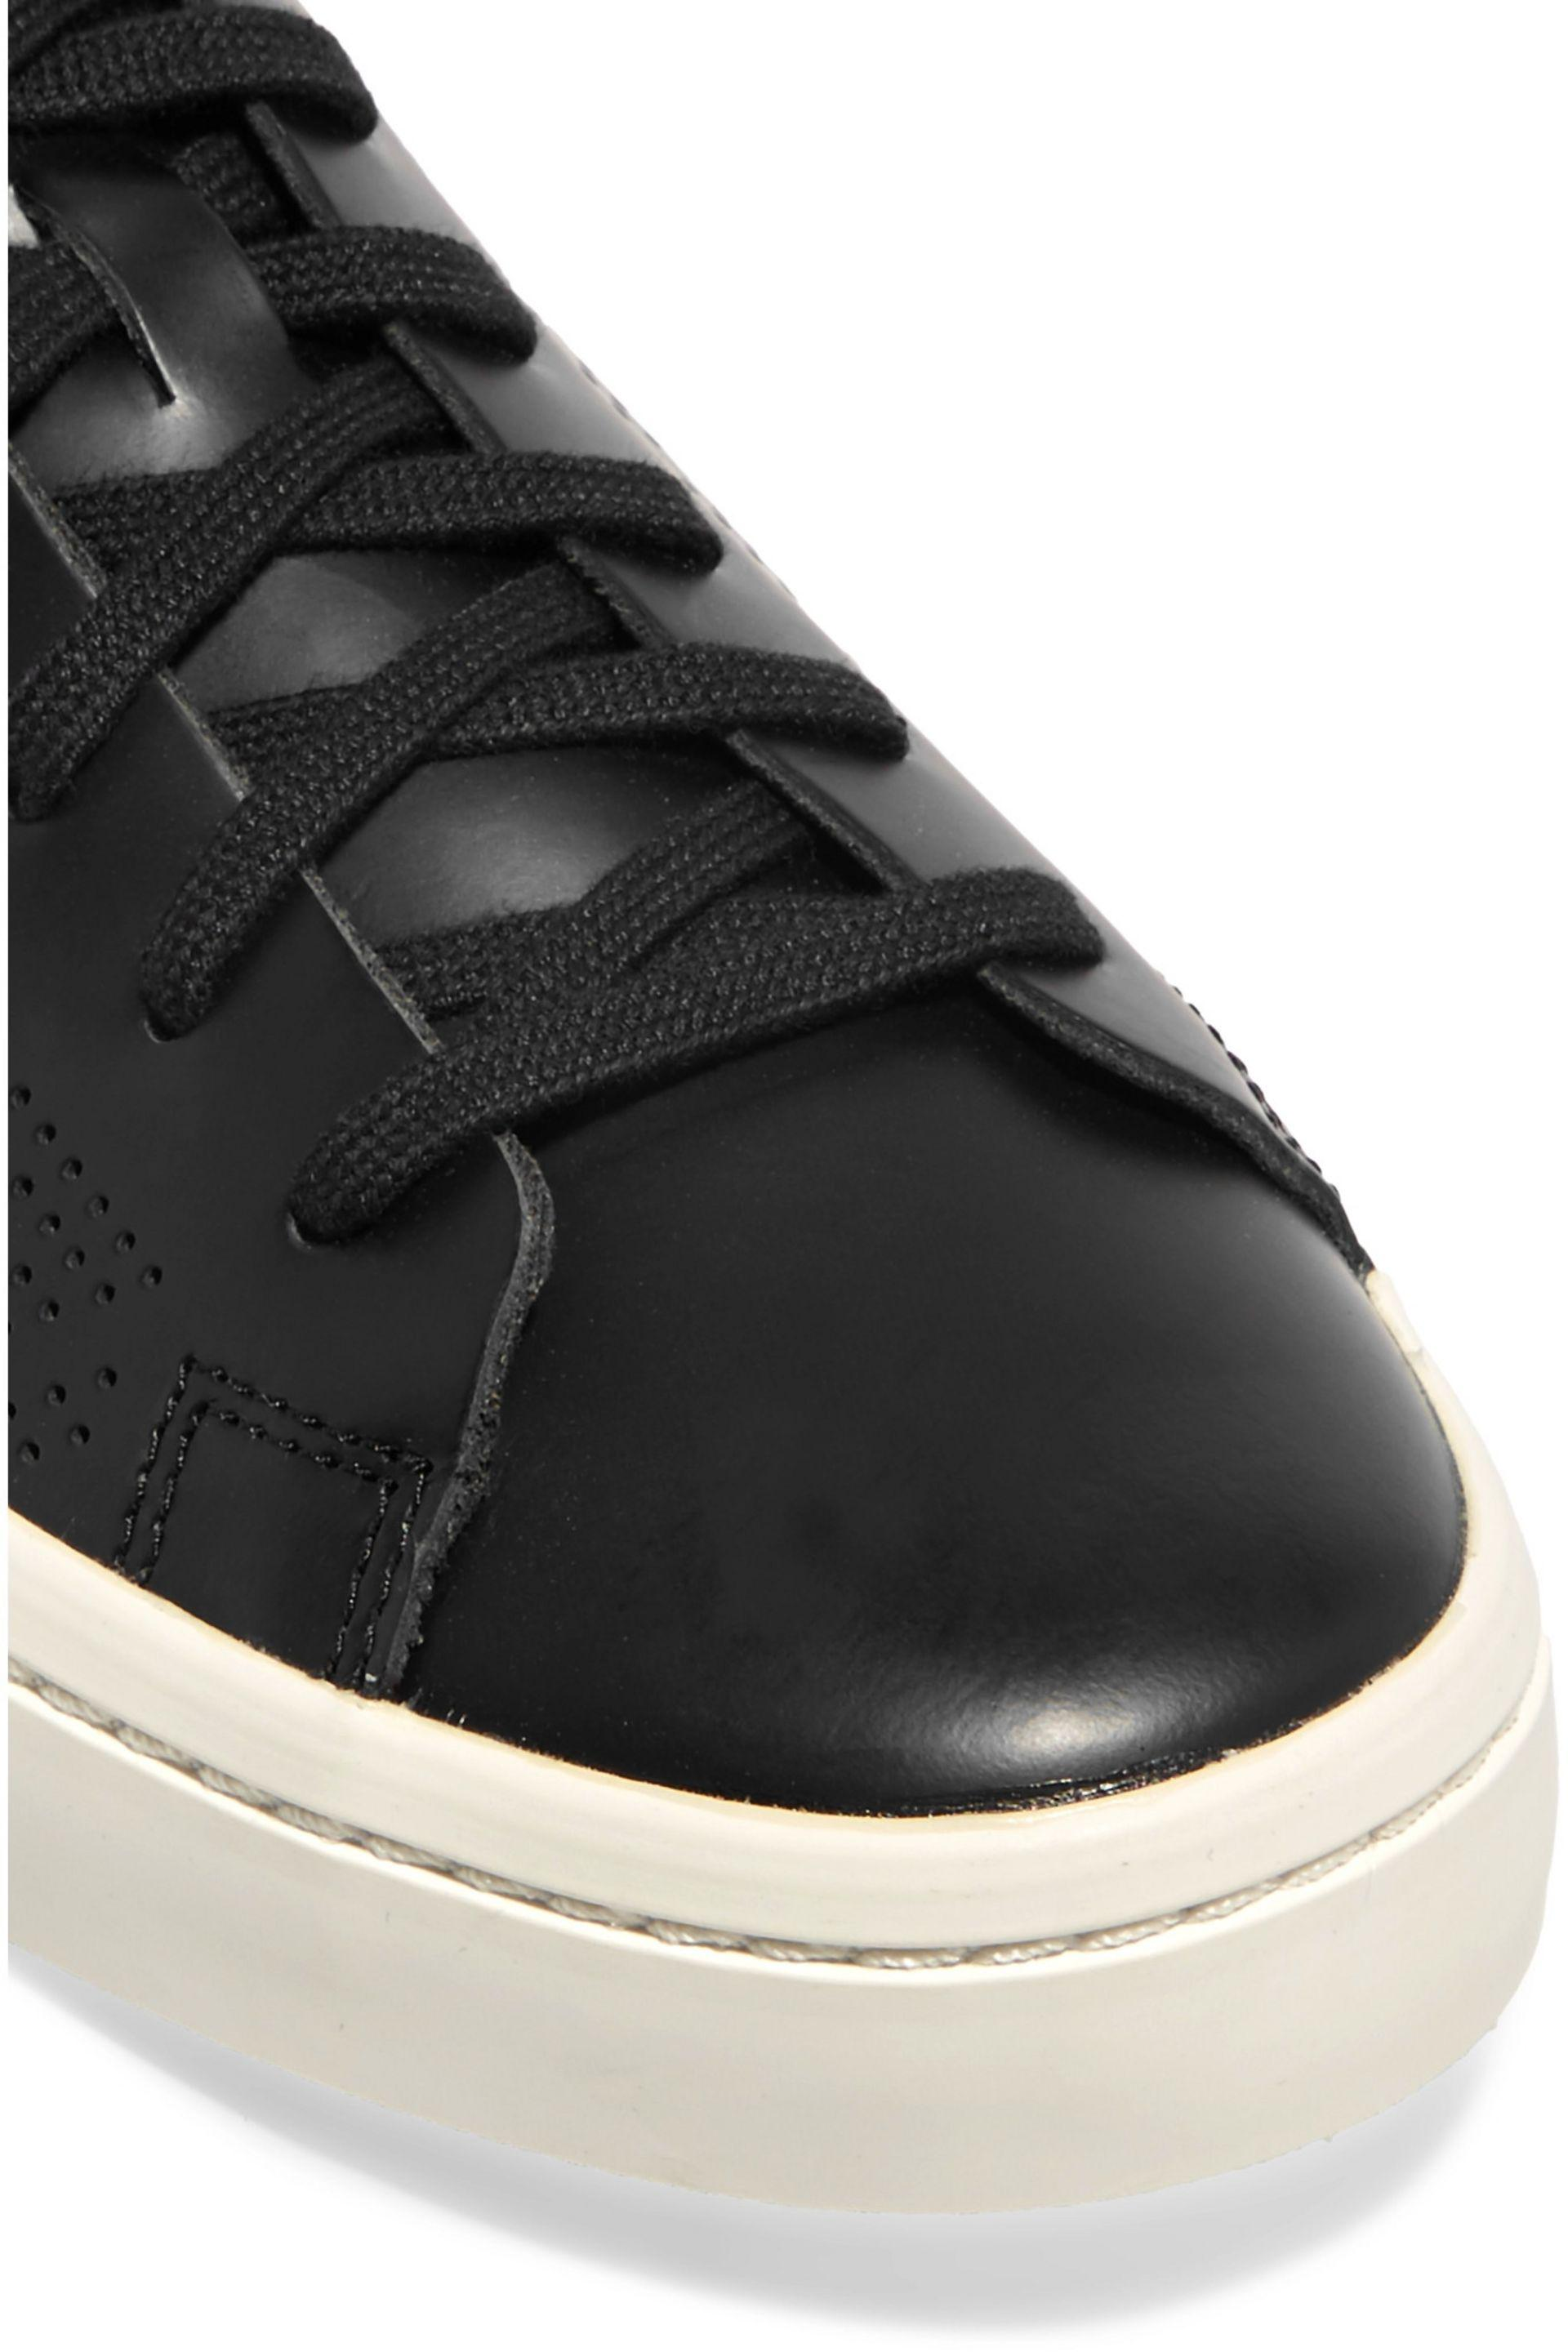 adidas Court Vantage Perforated Leather Sneakers in Black